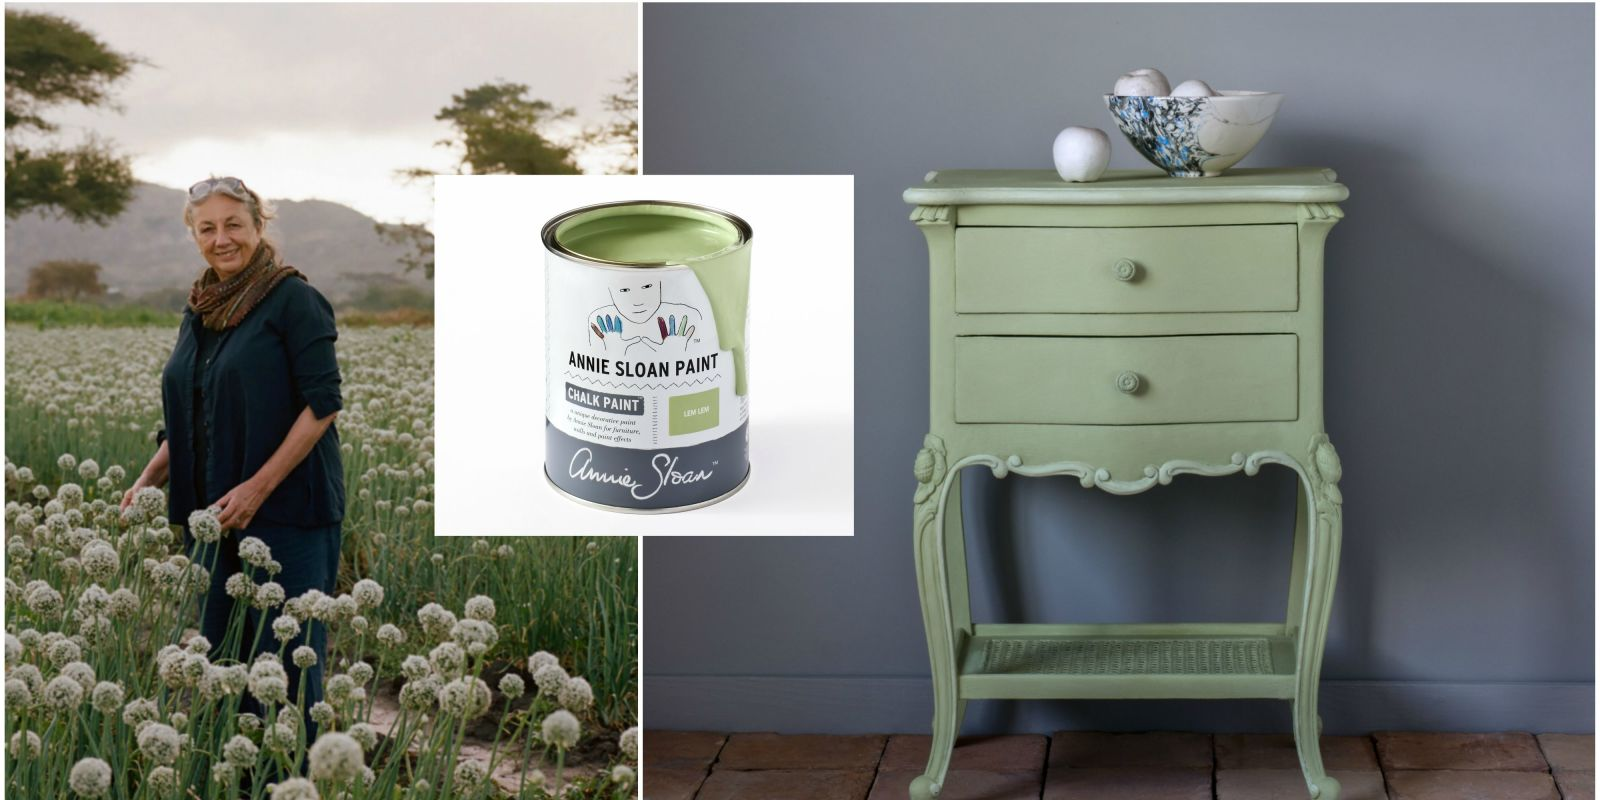 New Annie Sloan Chalk Paint Lem Lem Is The Colour Of Hope